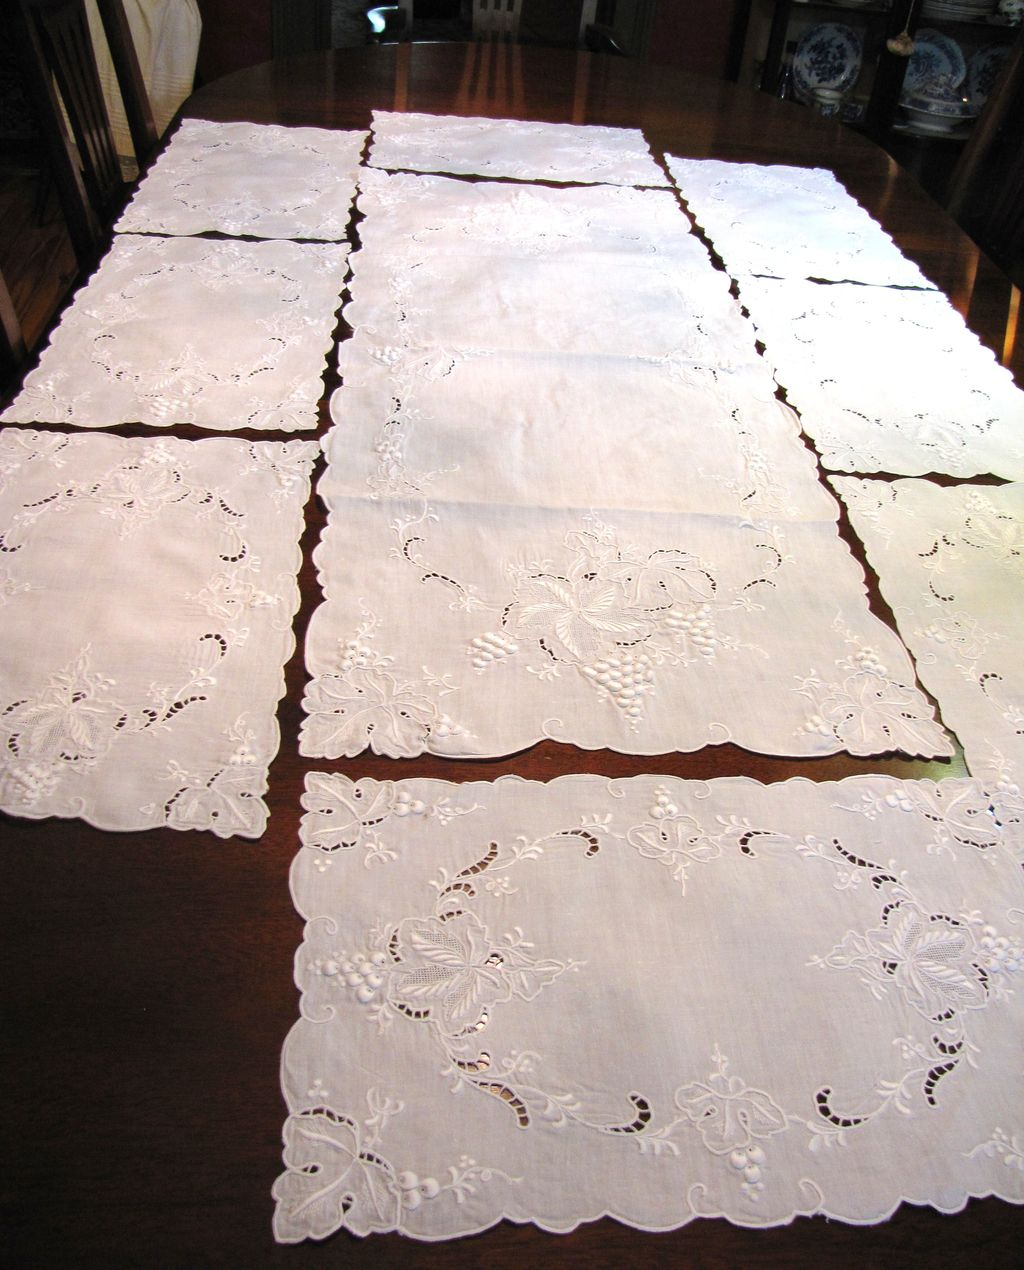 Exquisite Hand Embroidered Table Runner & 8 Placemats,Puffed Satin Stitch, Drawn Threadwork!